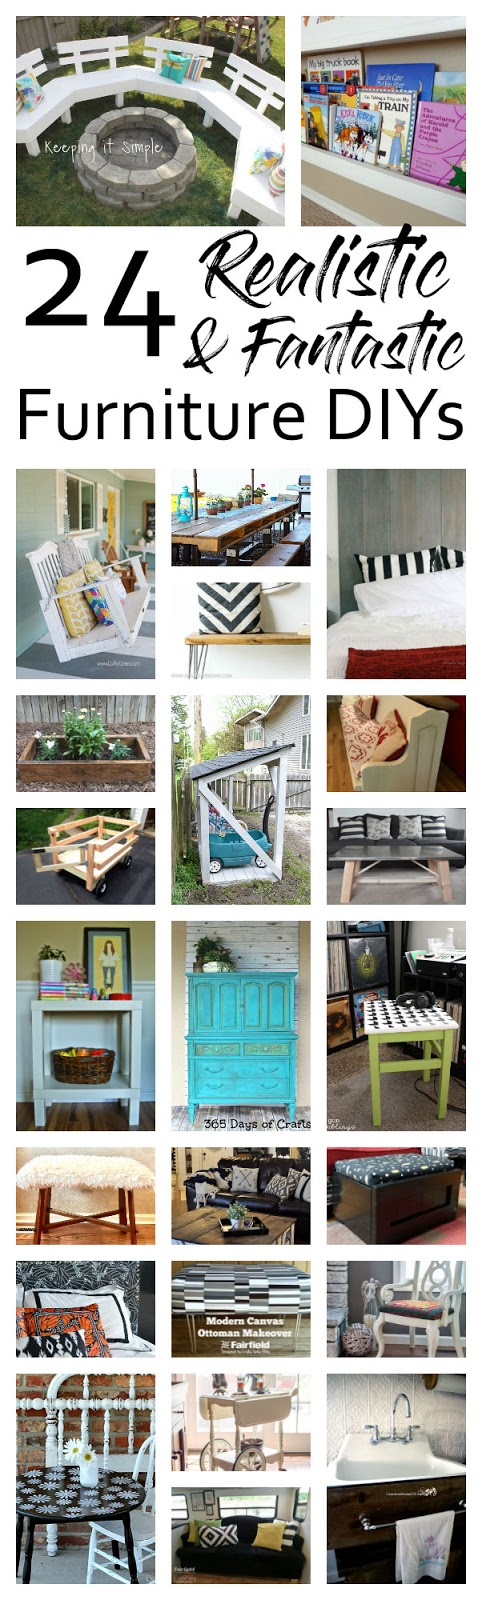 Tons of great DIY Furniture projects and tutorials